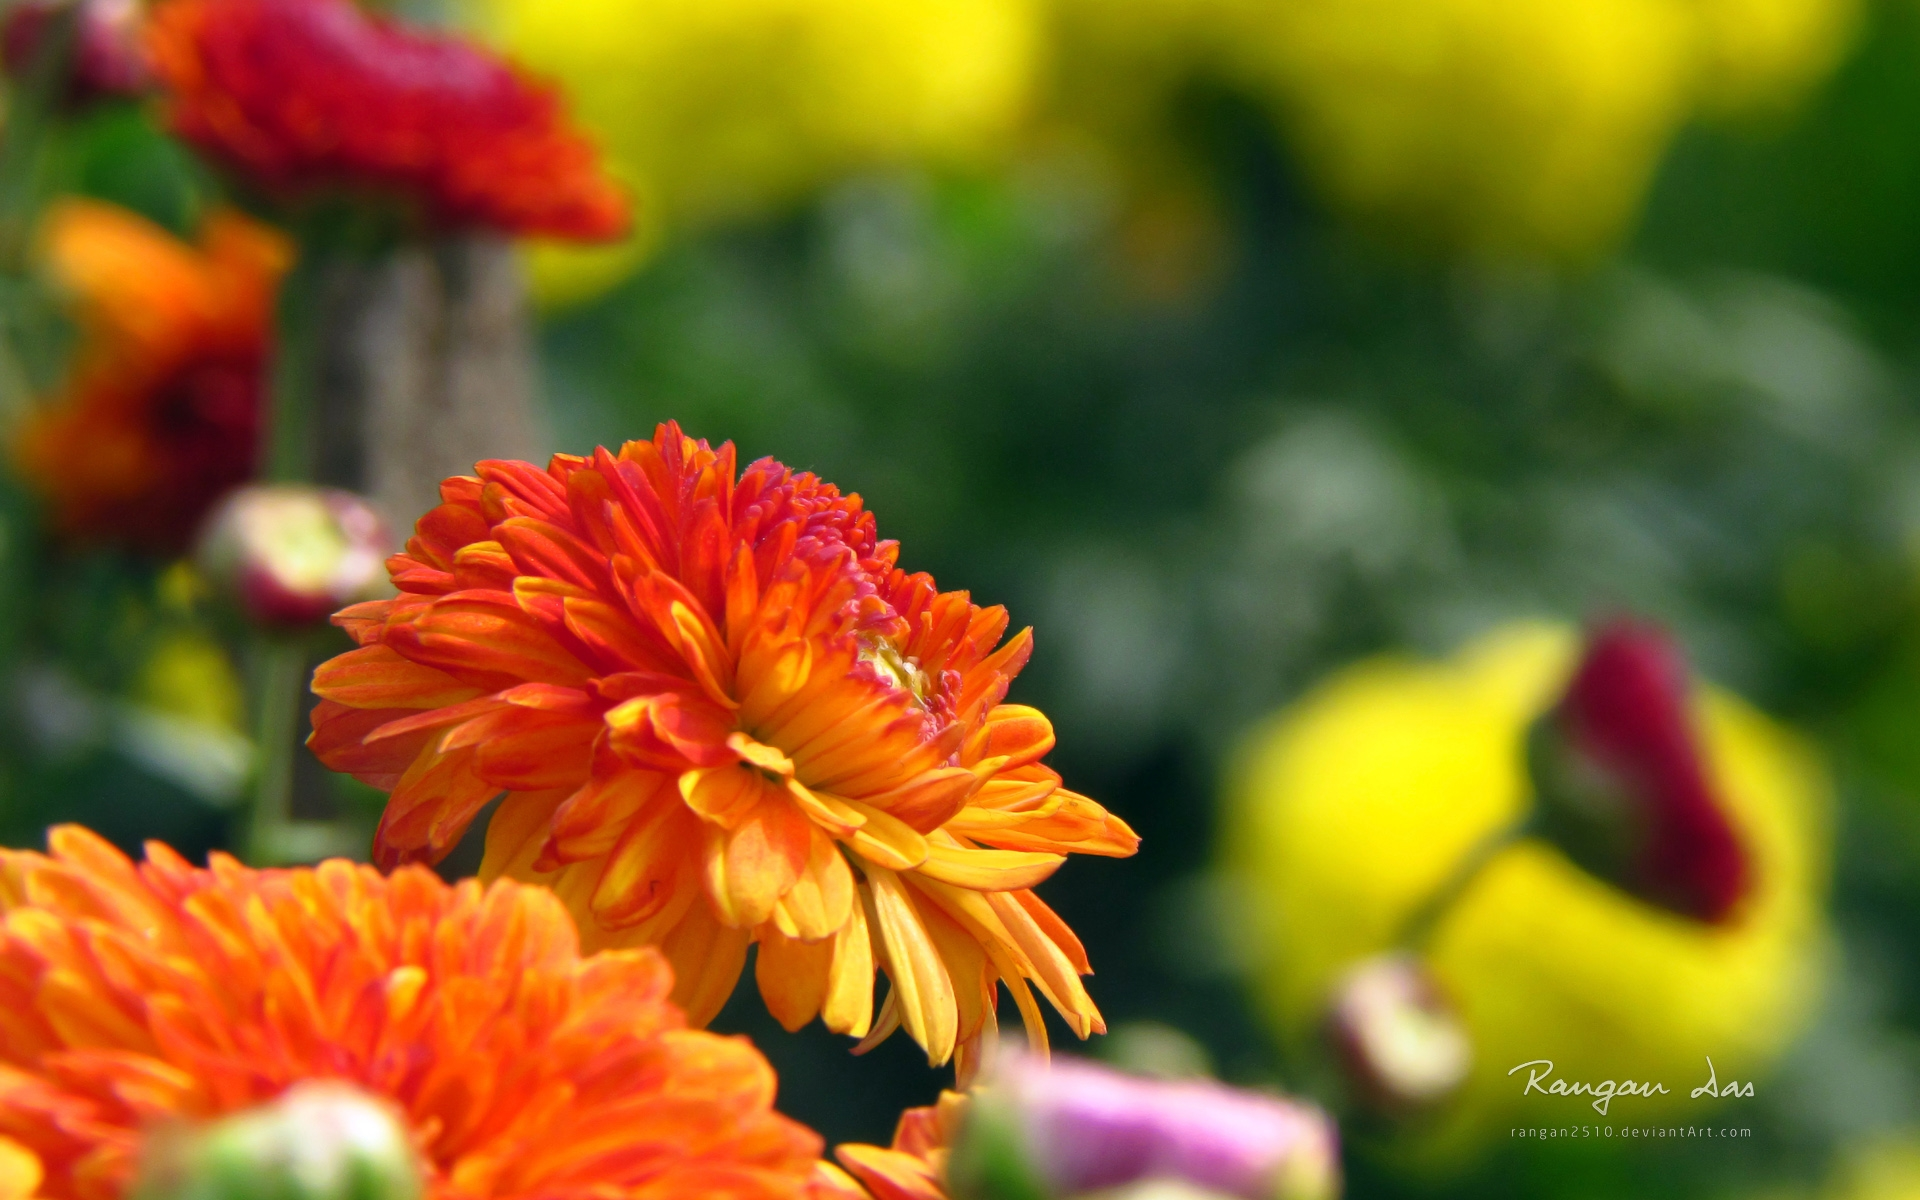 Windows 8 1 hd wallpapers only wallpapersafari for Ideanature